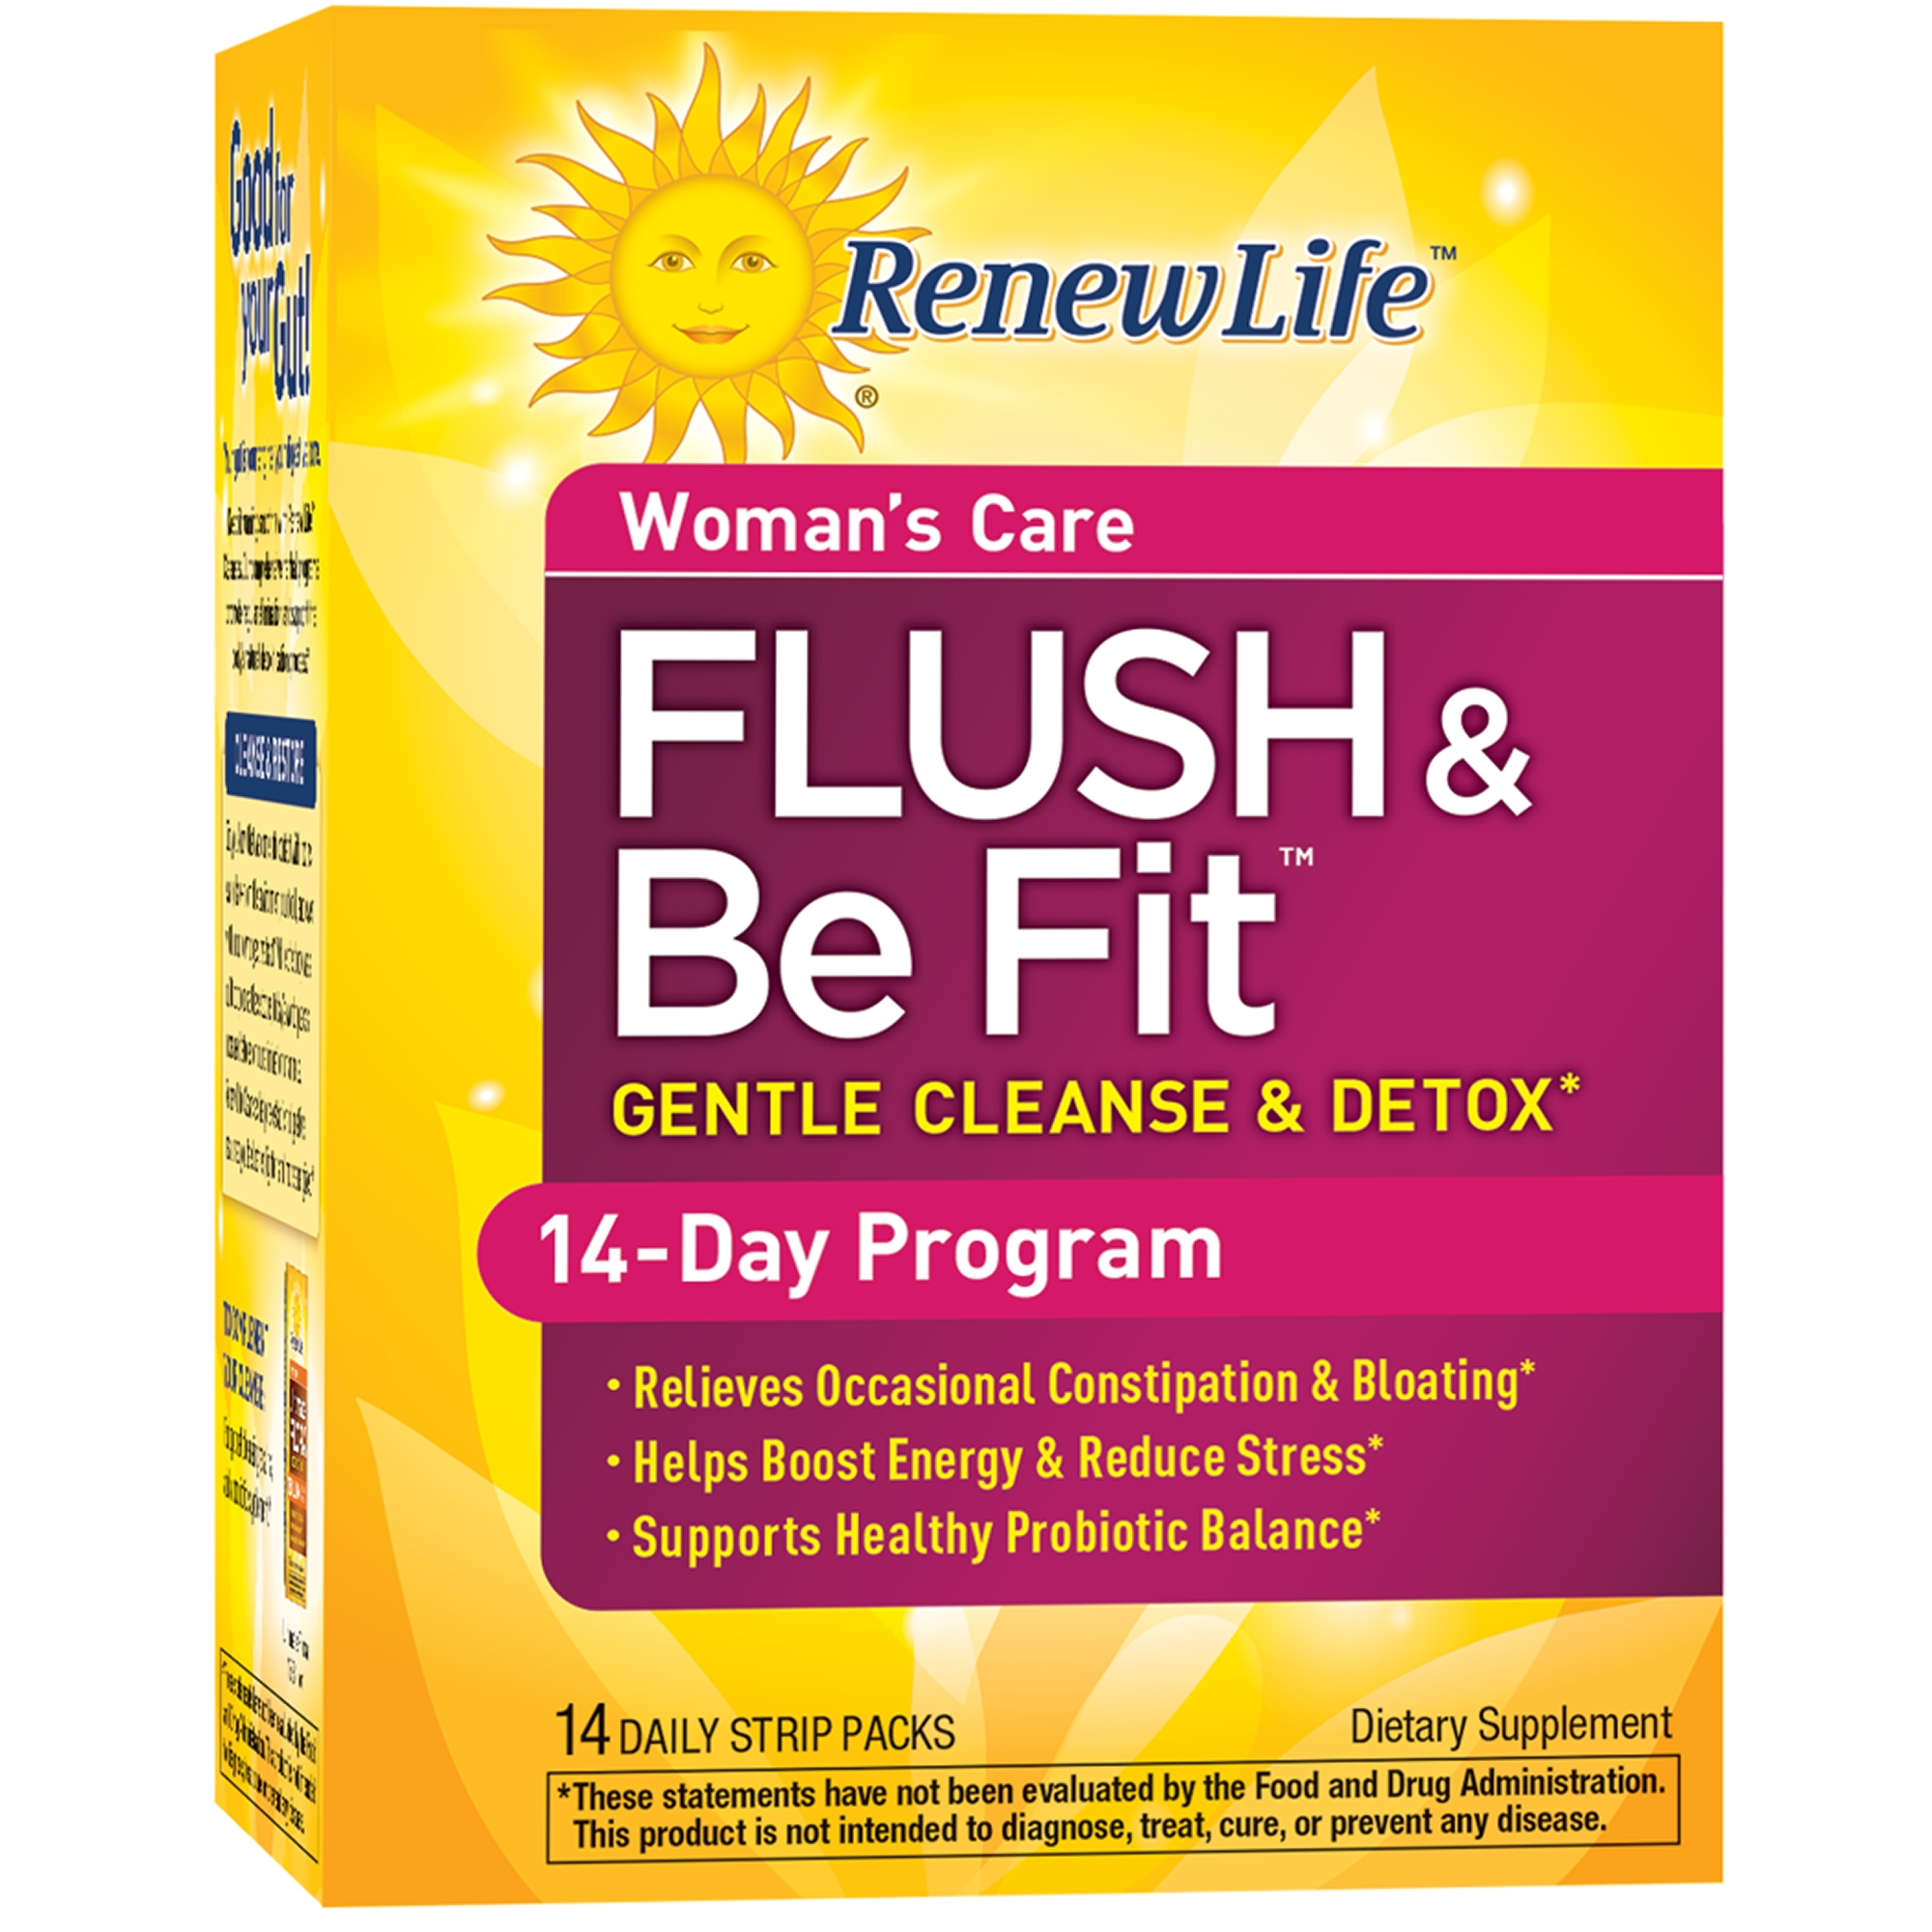 Renew Life - Flush & Be Fit - Woman's Care - detox & cleanse supplement for women - 14 day program